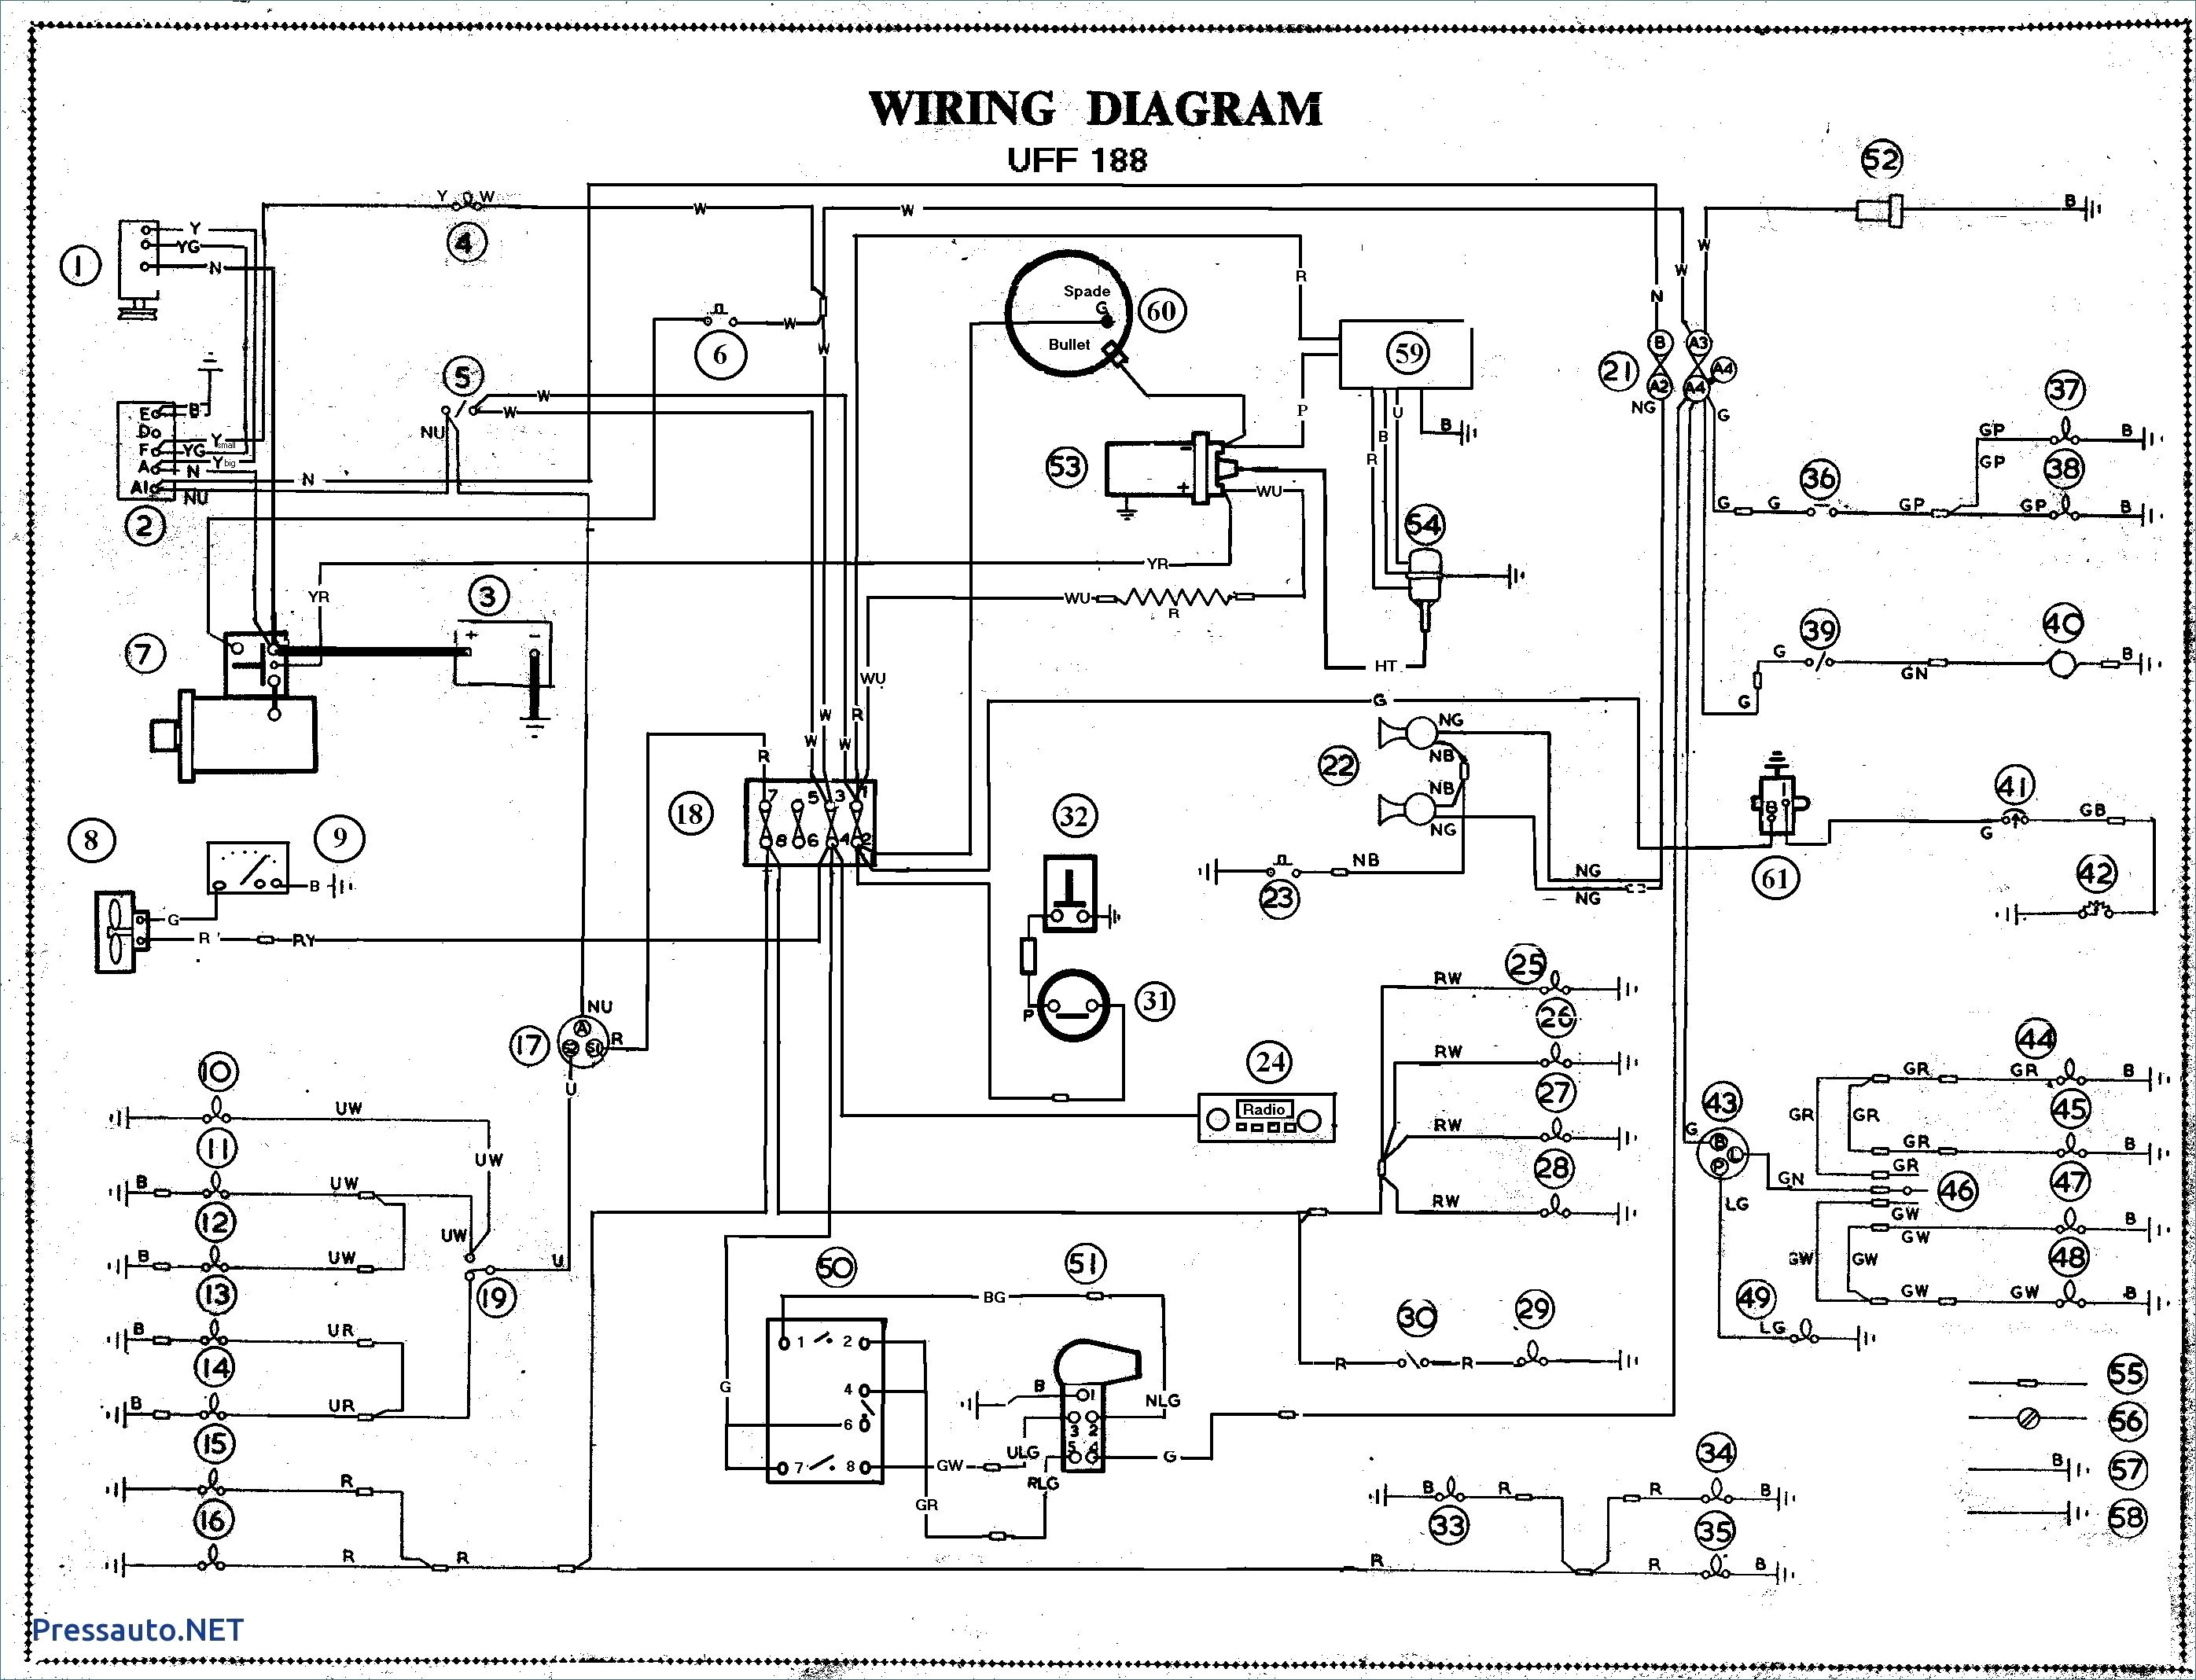 Bulldog Security Wiring Diagram Bulldog Security Bd New Vehicle Wiring Diagrams Book Bulldog Of Bulldog Security Wiring Diagram